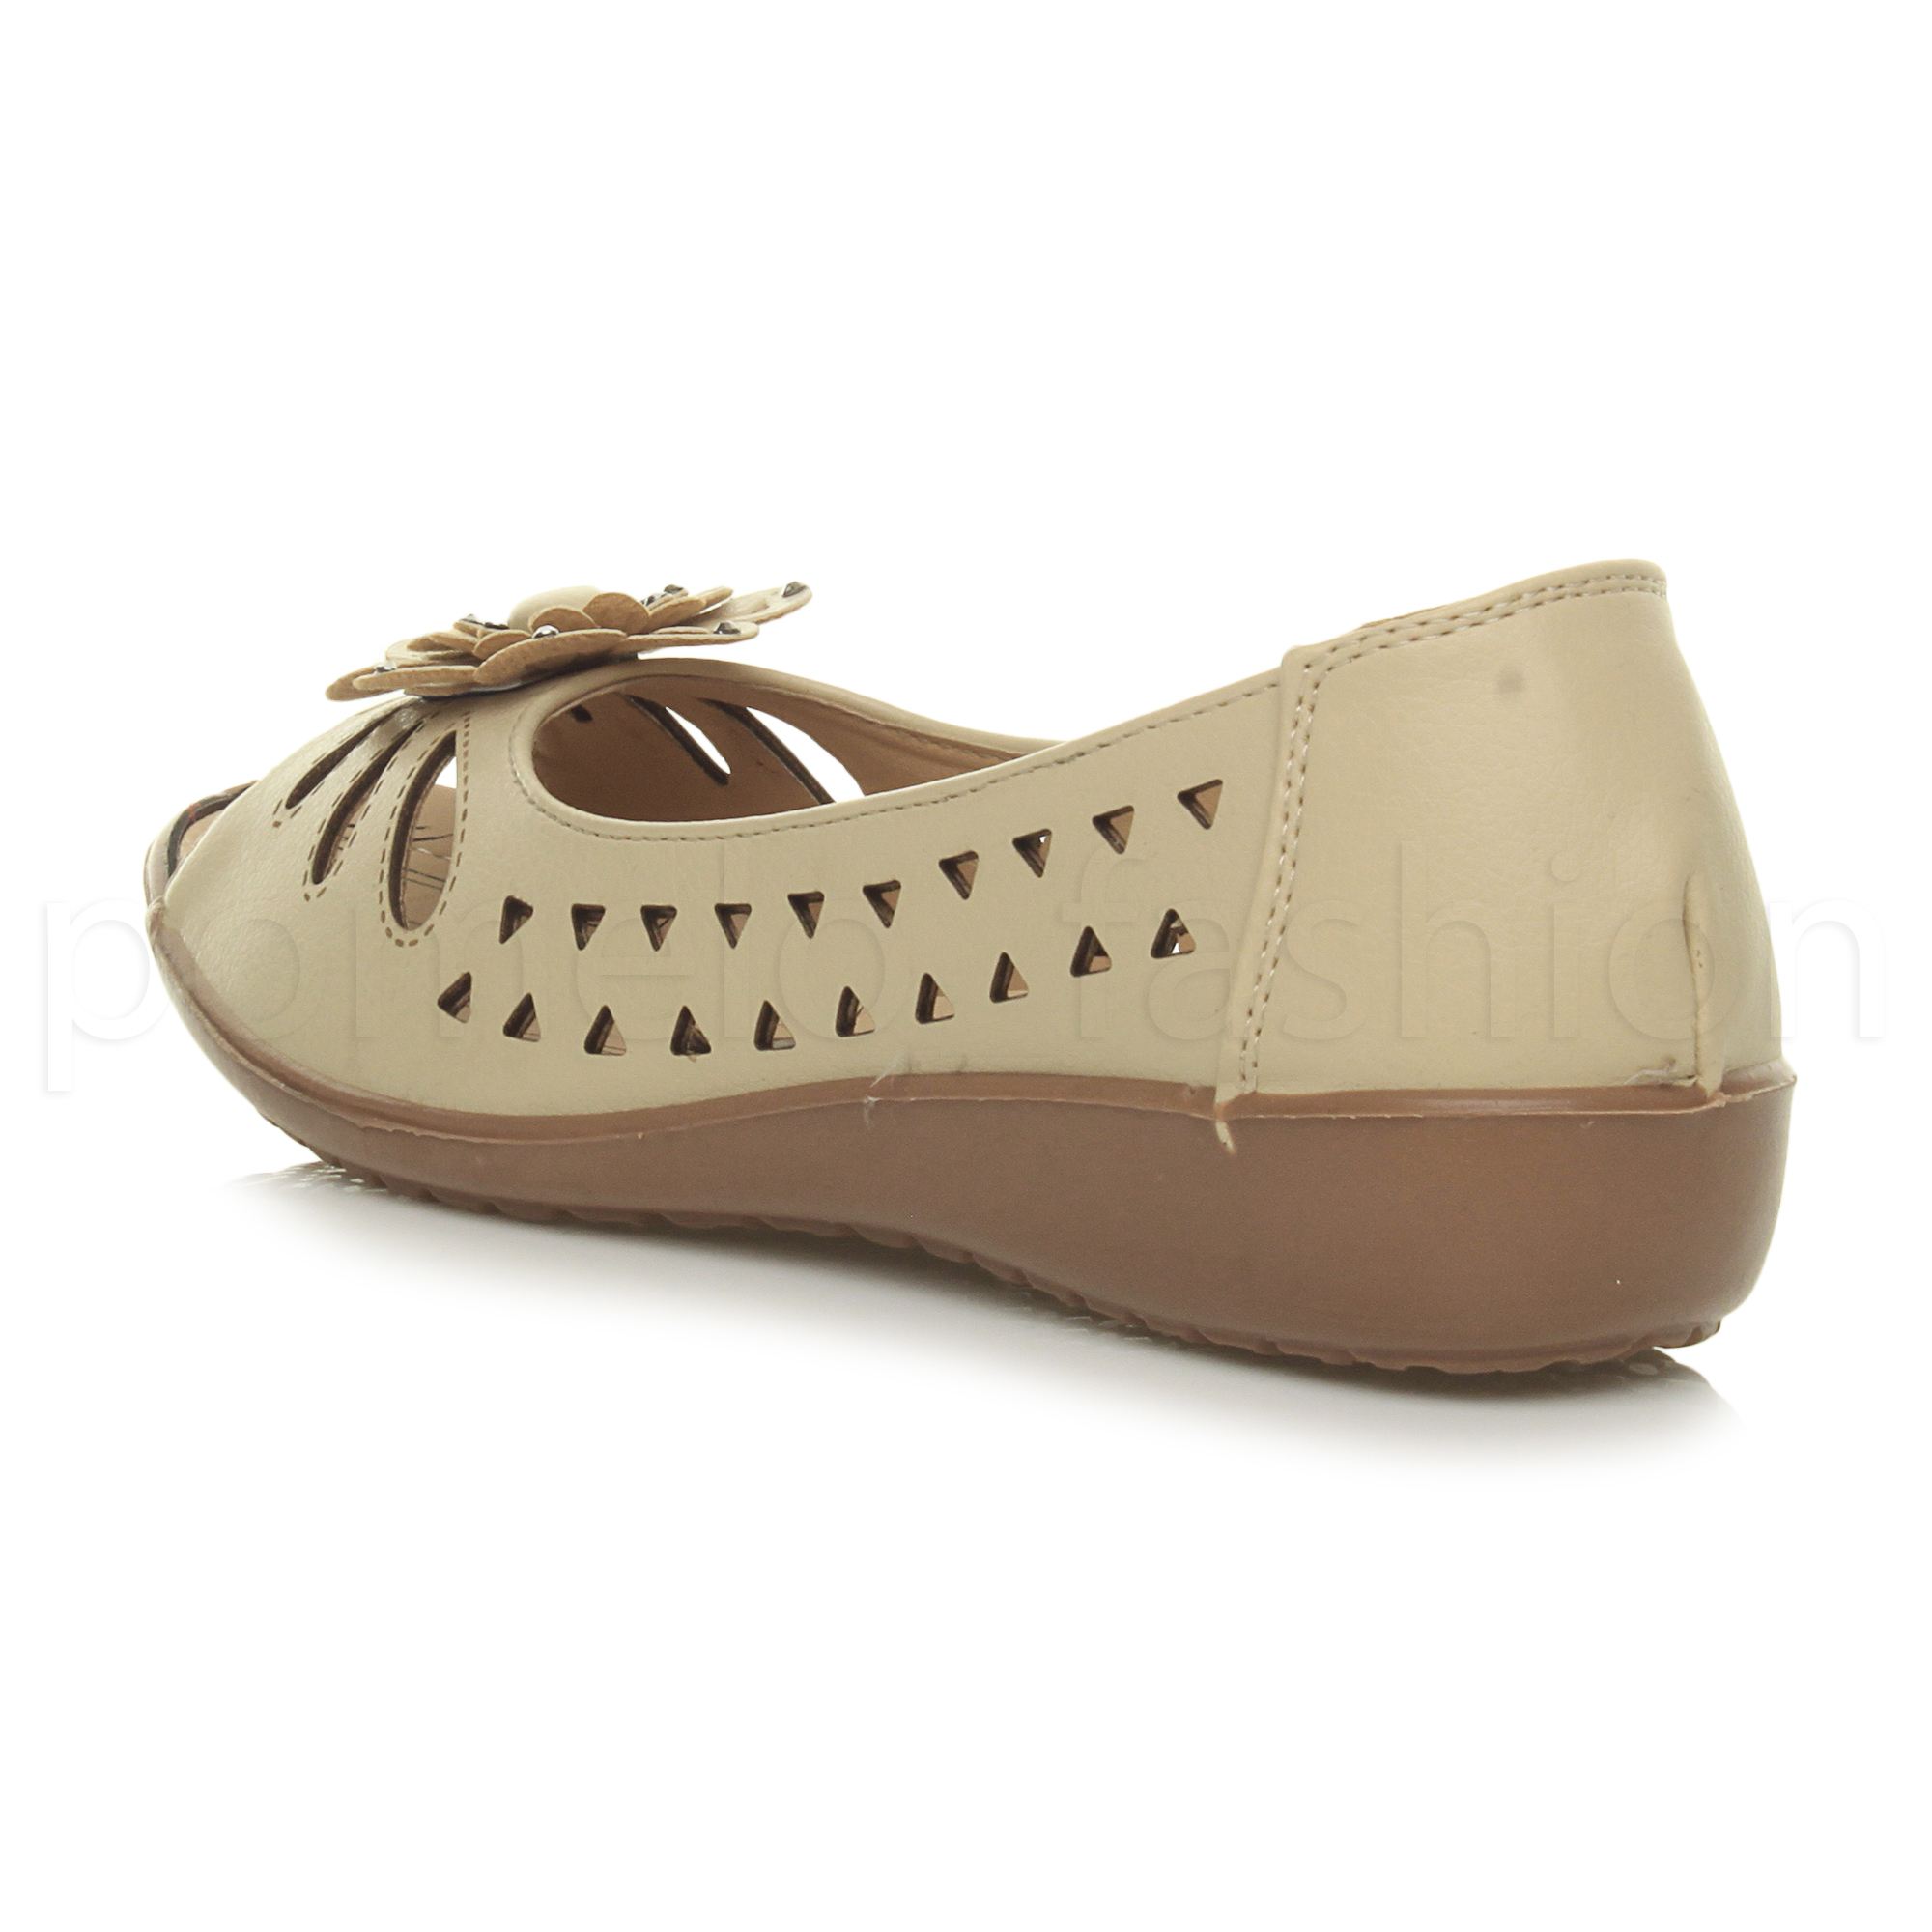 WOMENS LADIES LOW WEDGE FLOWER COMFORT PADDED WALKING SANDALS SLIP ON SHOES SIZE